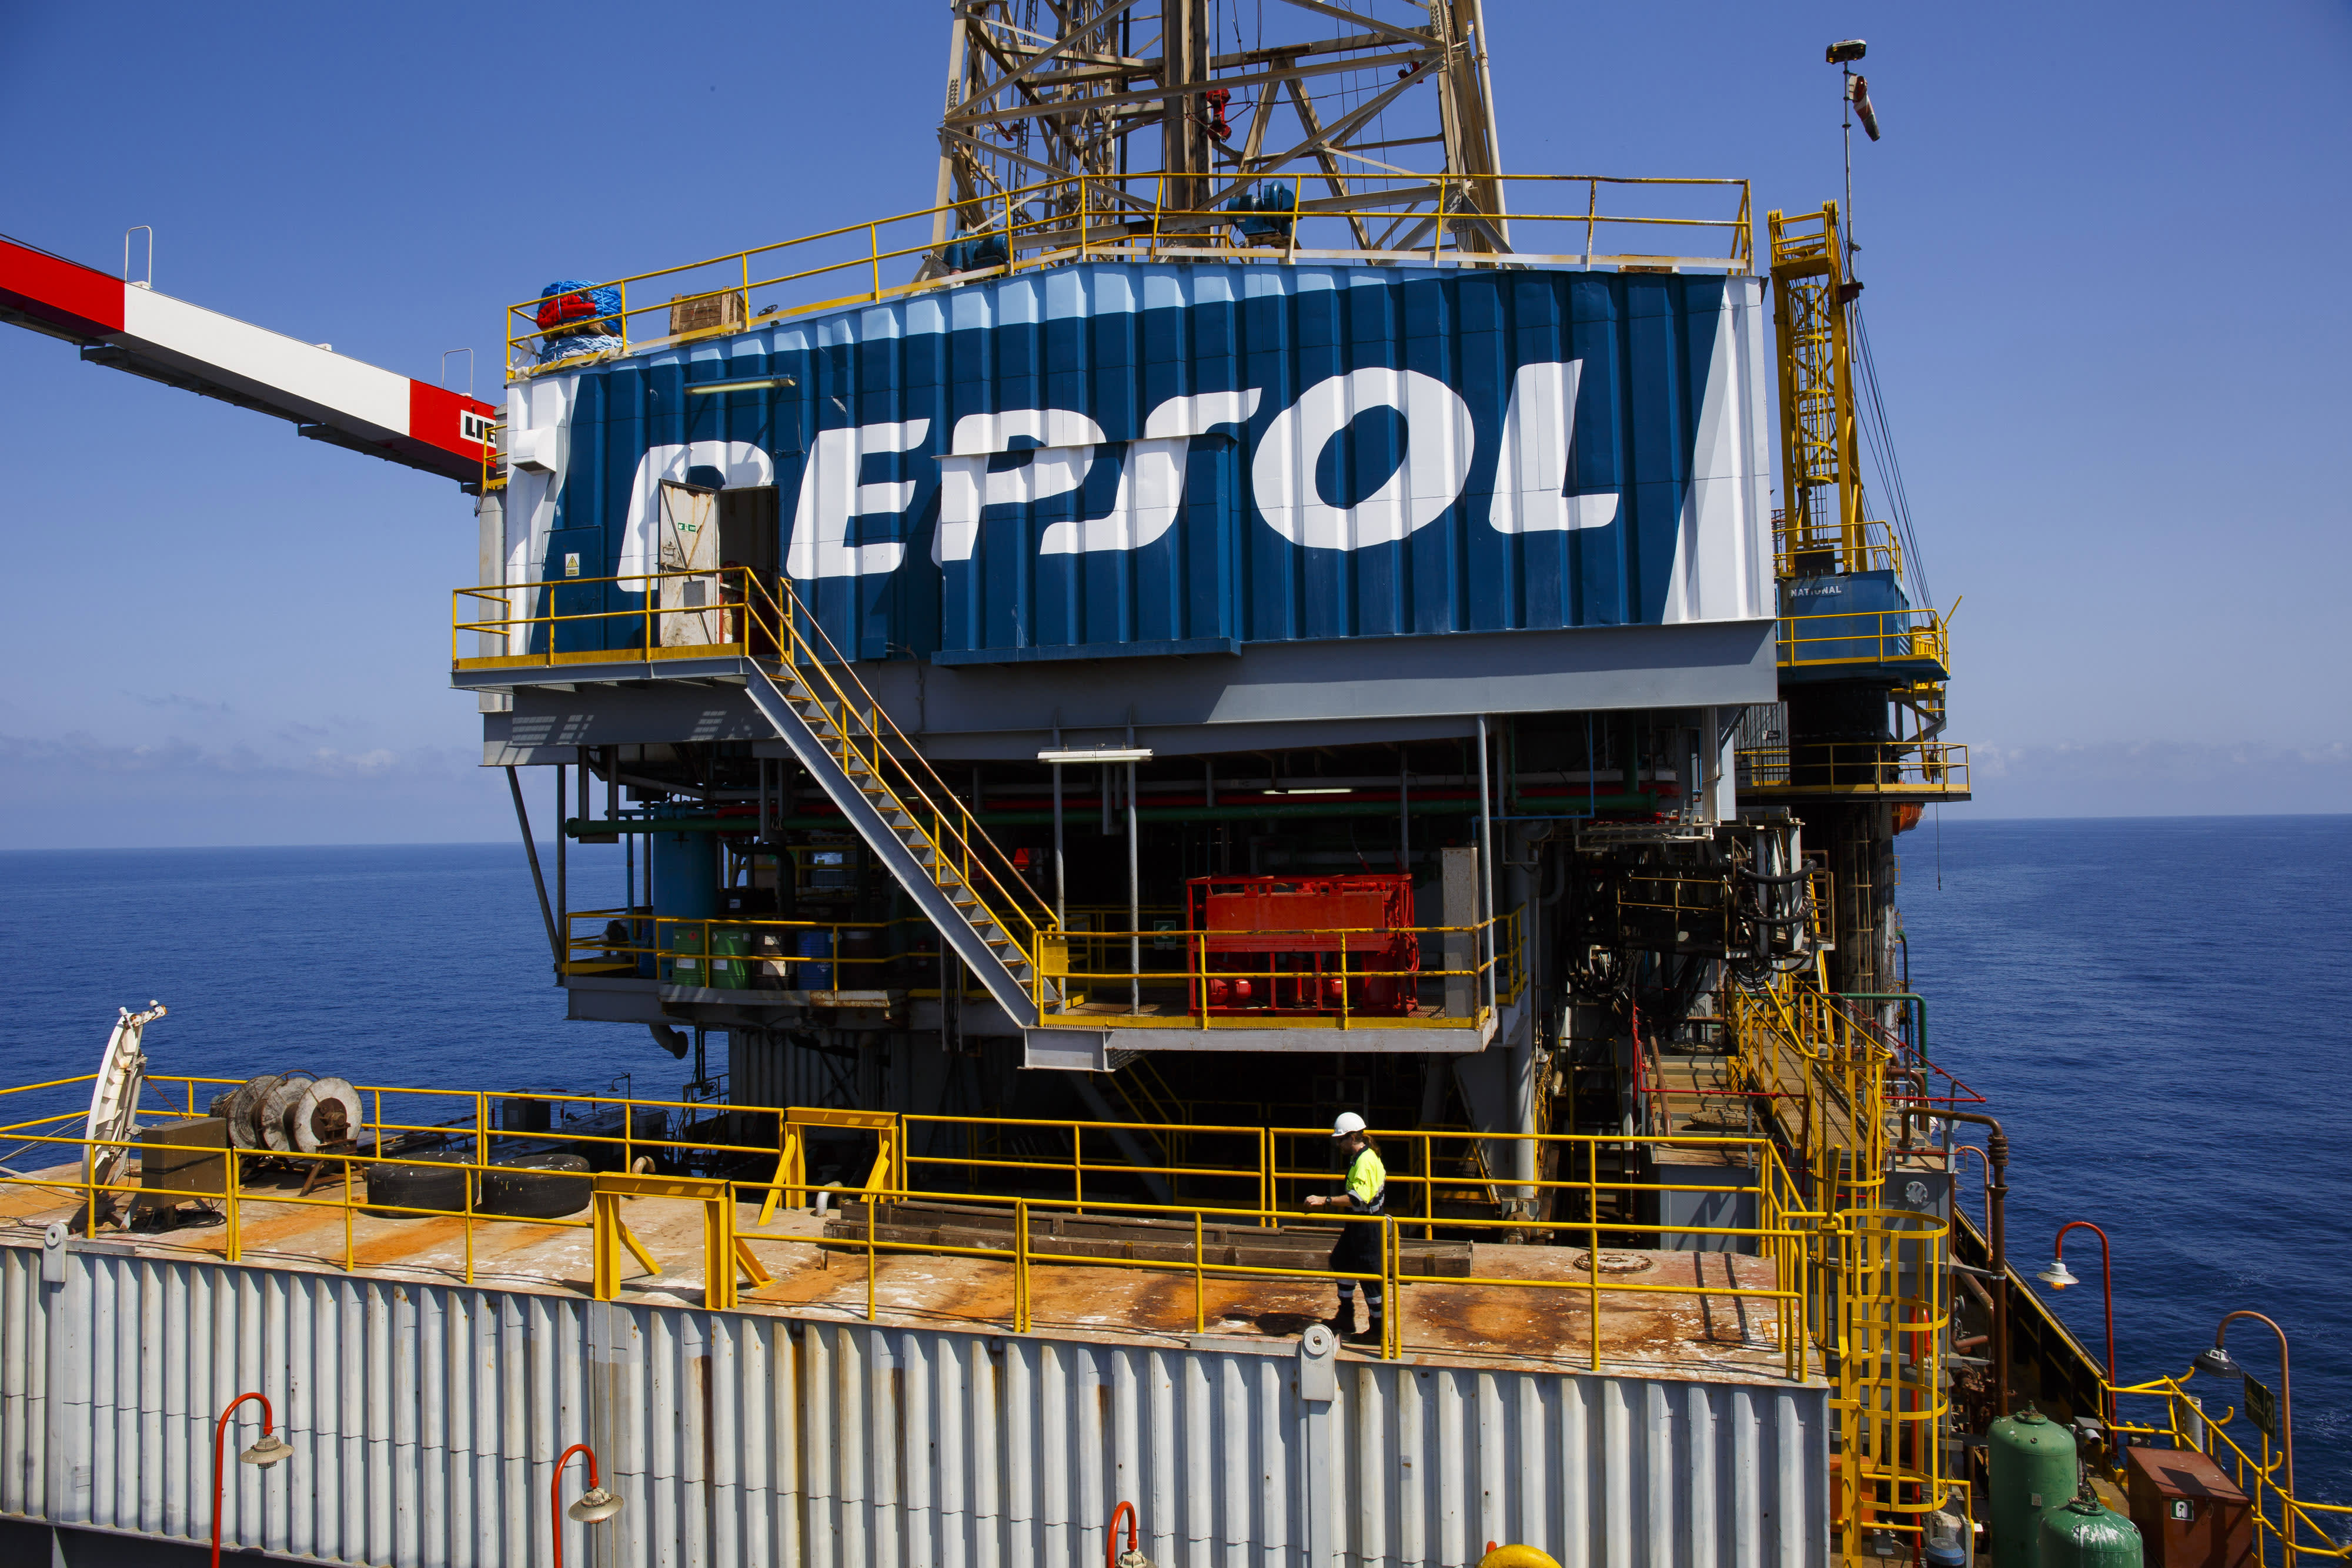 Repsol says it will be carbon neutral by 2050, becoming the first oil major to make a pledge of this kind